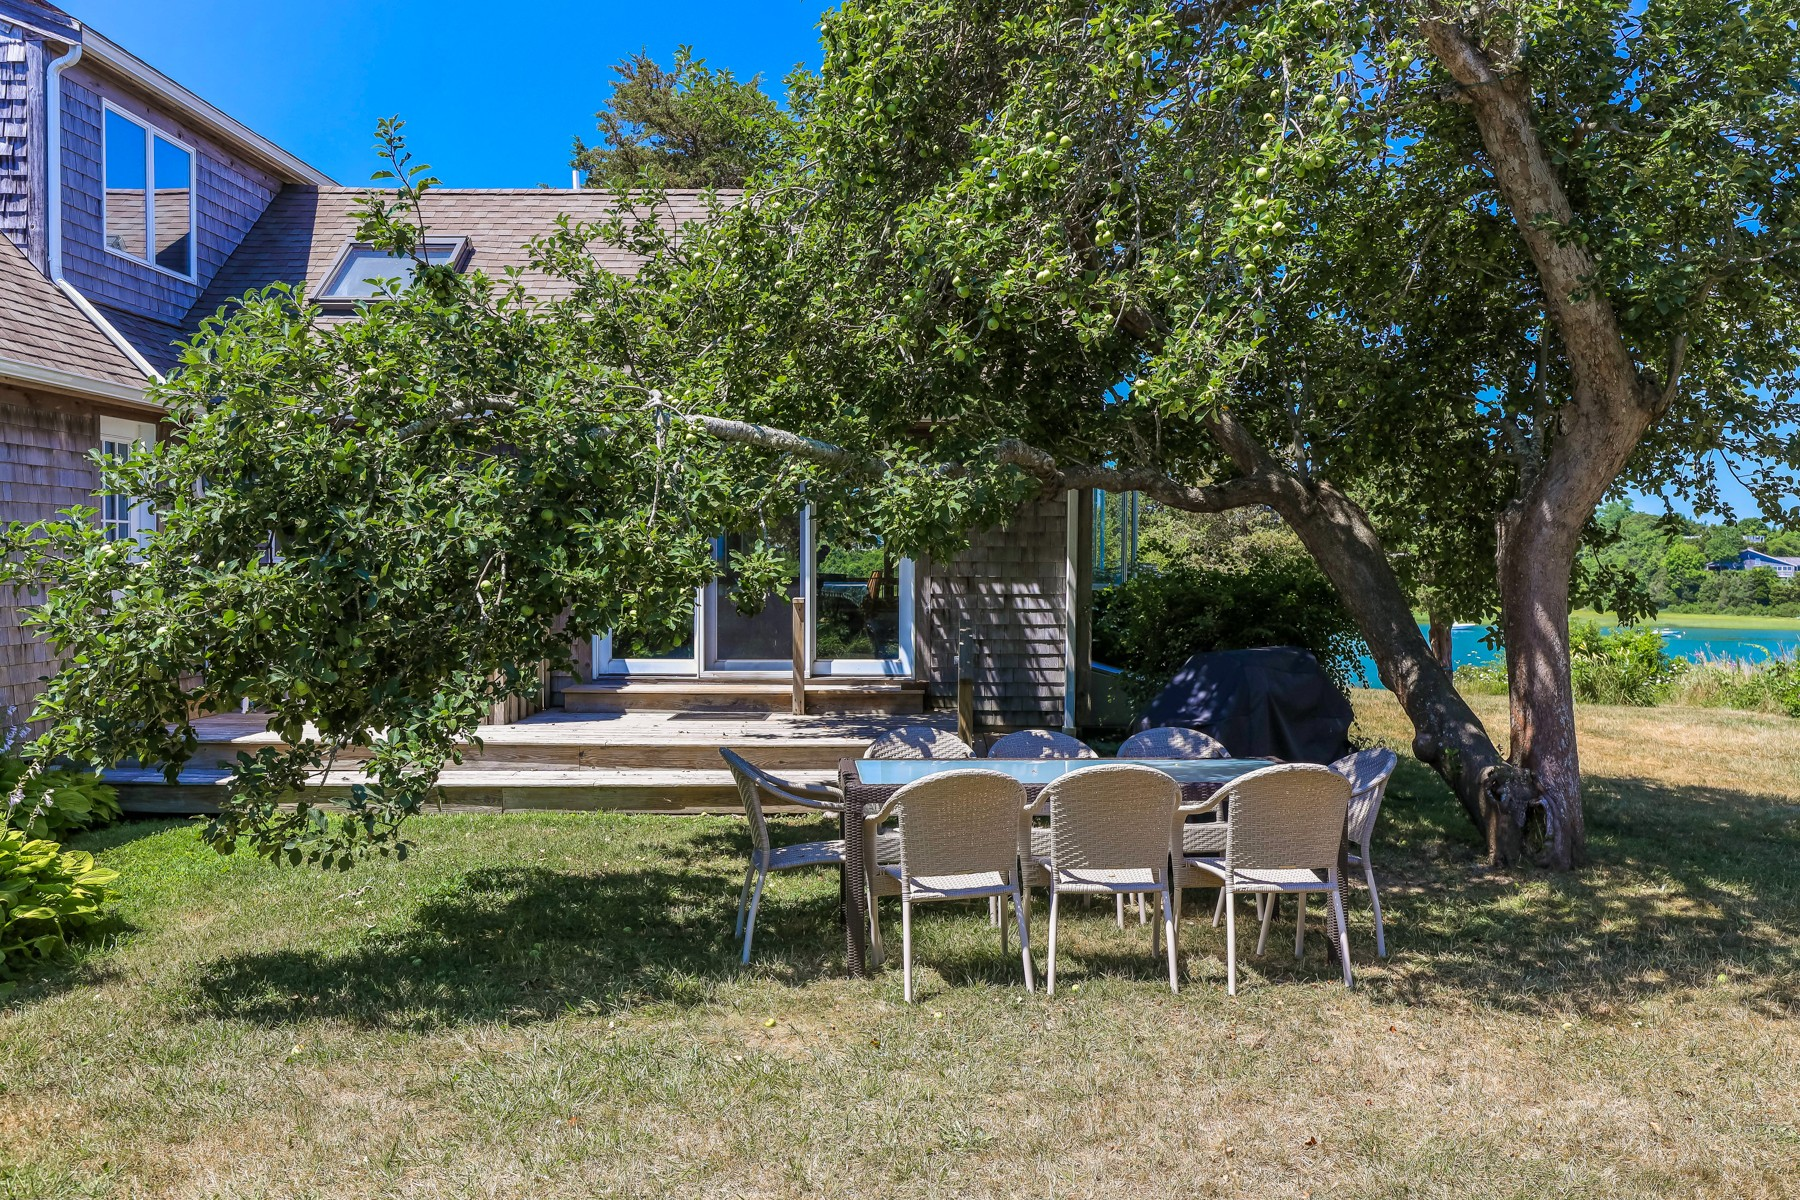 Backyard with dining table